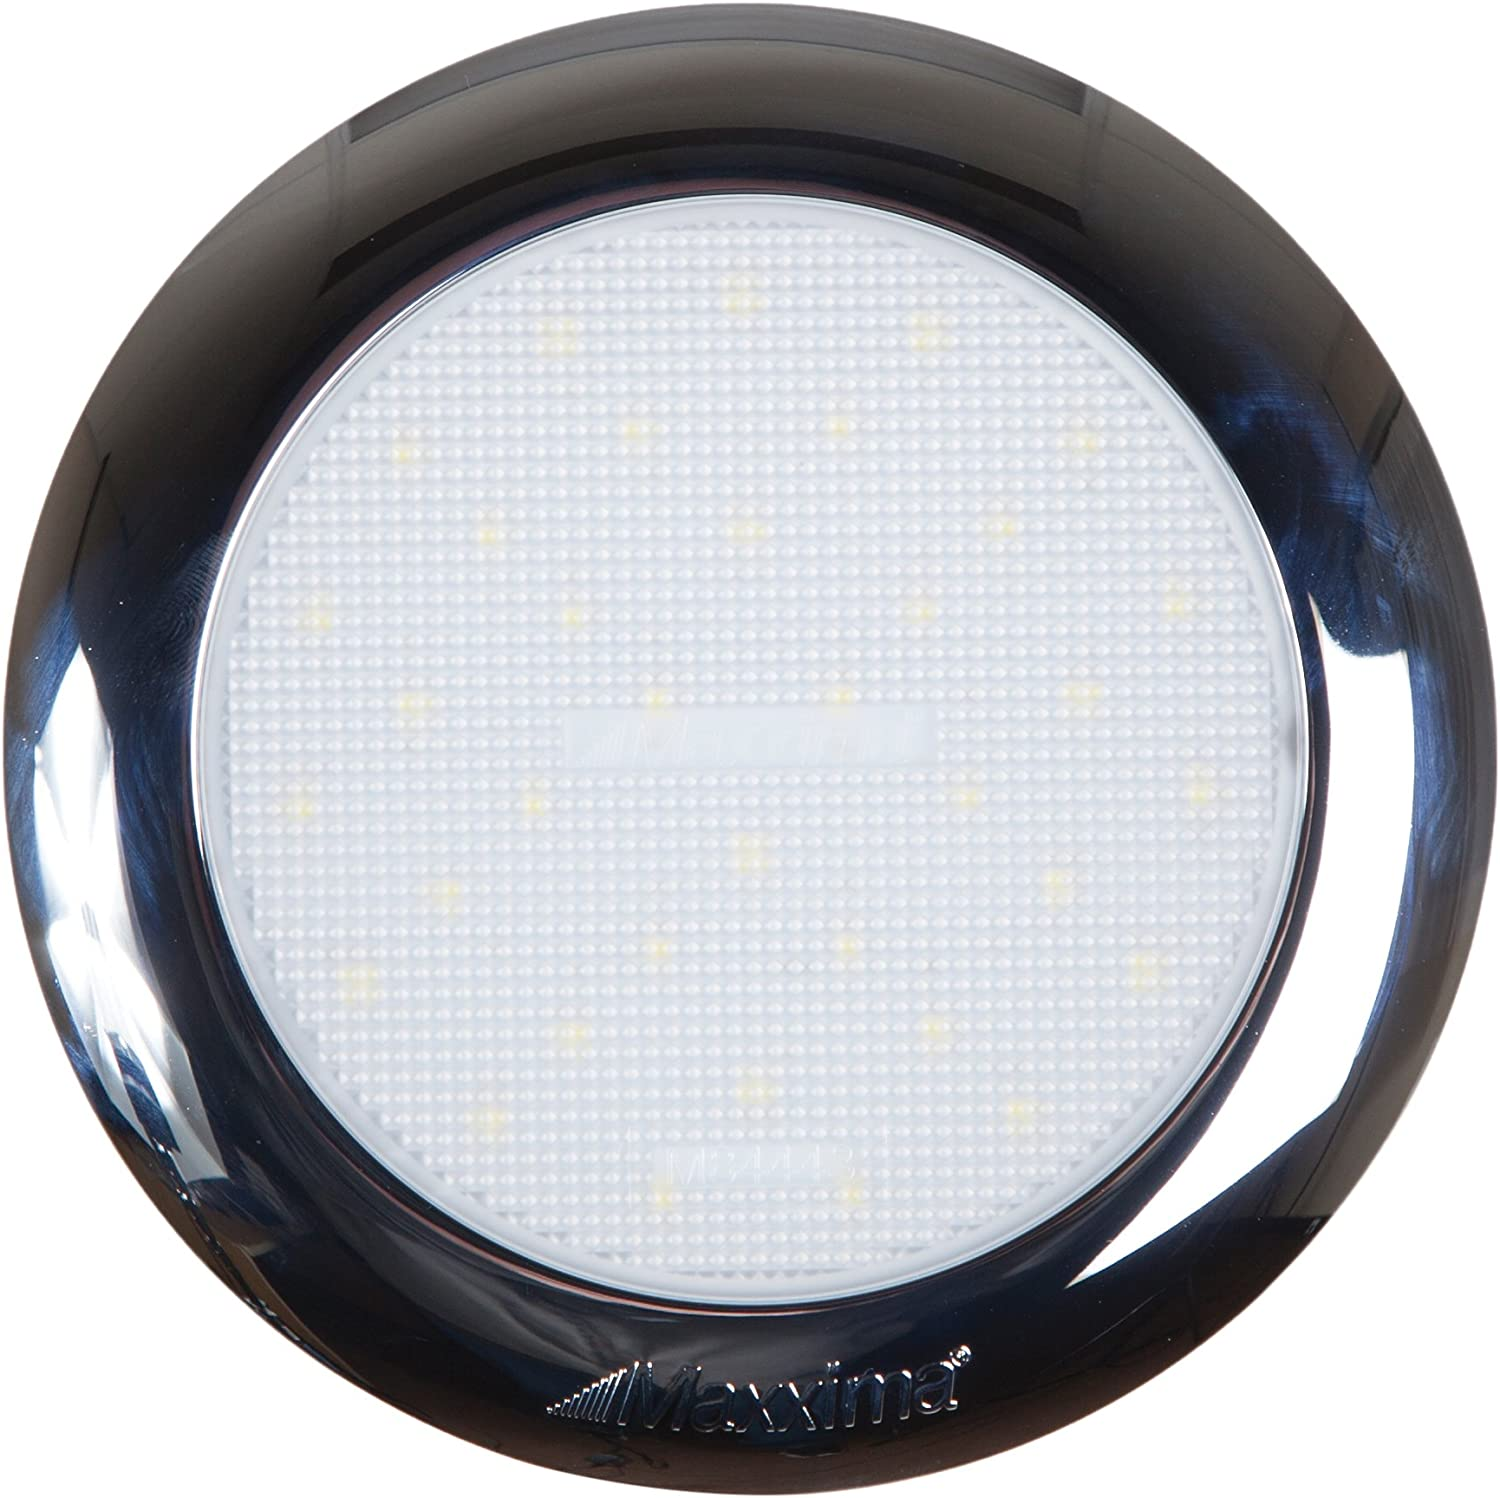 Maxxima M84405-C 18 LED 5.50 Interior Dome Light 325 Lumens